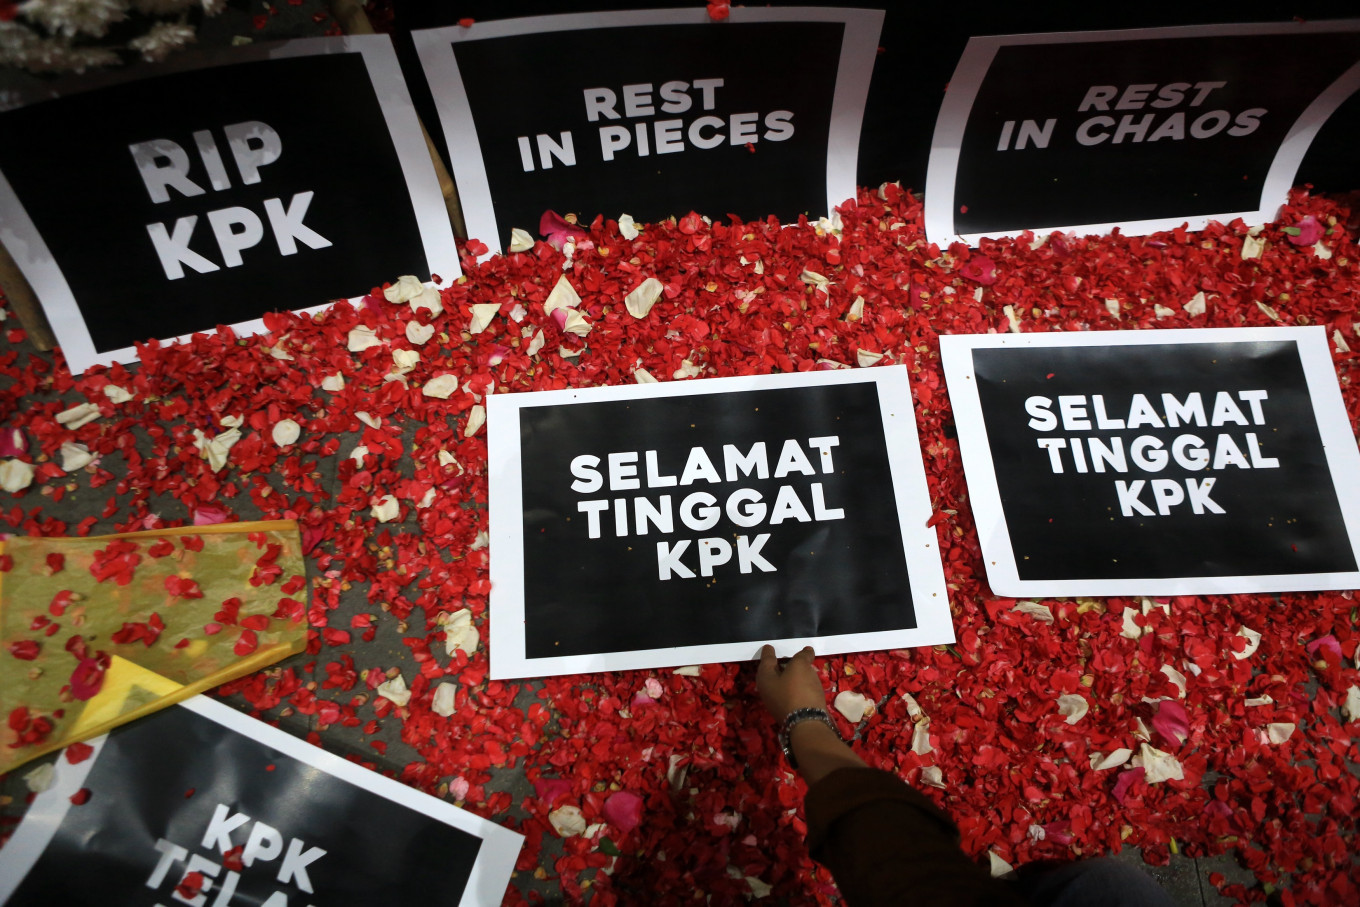 Who killed the KPK?